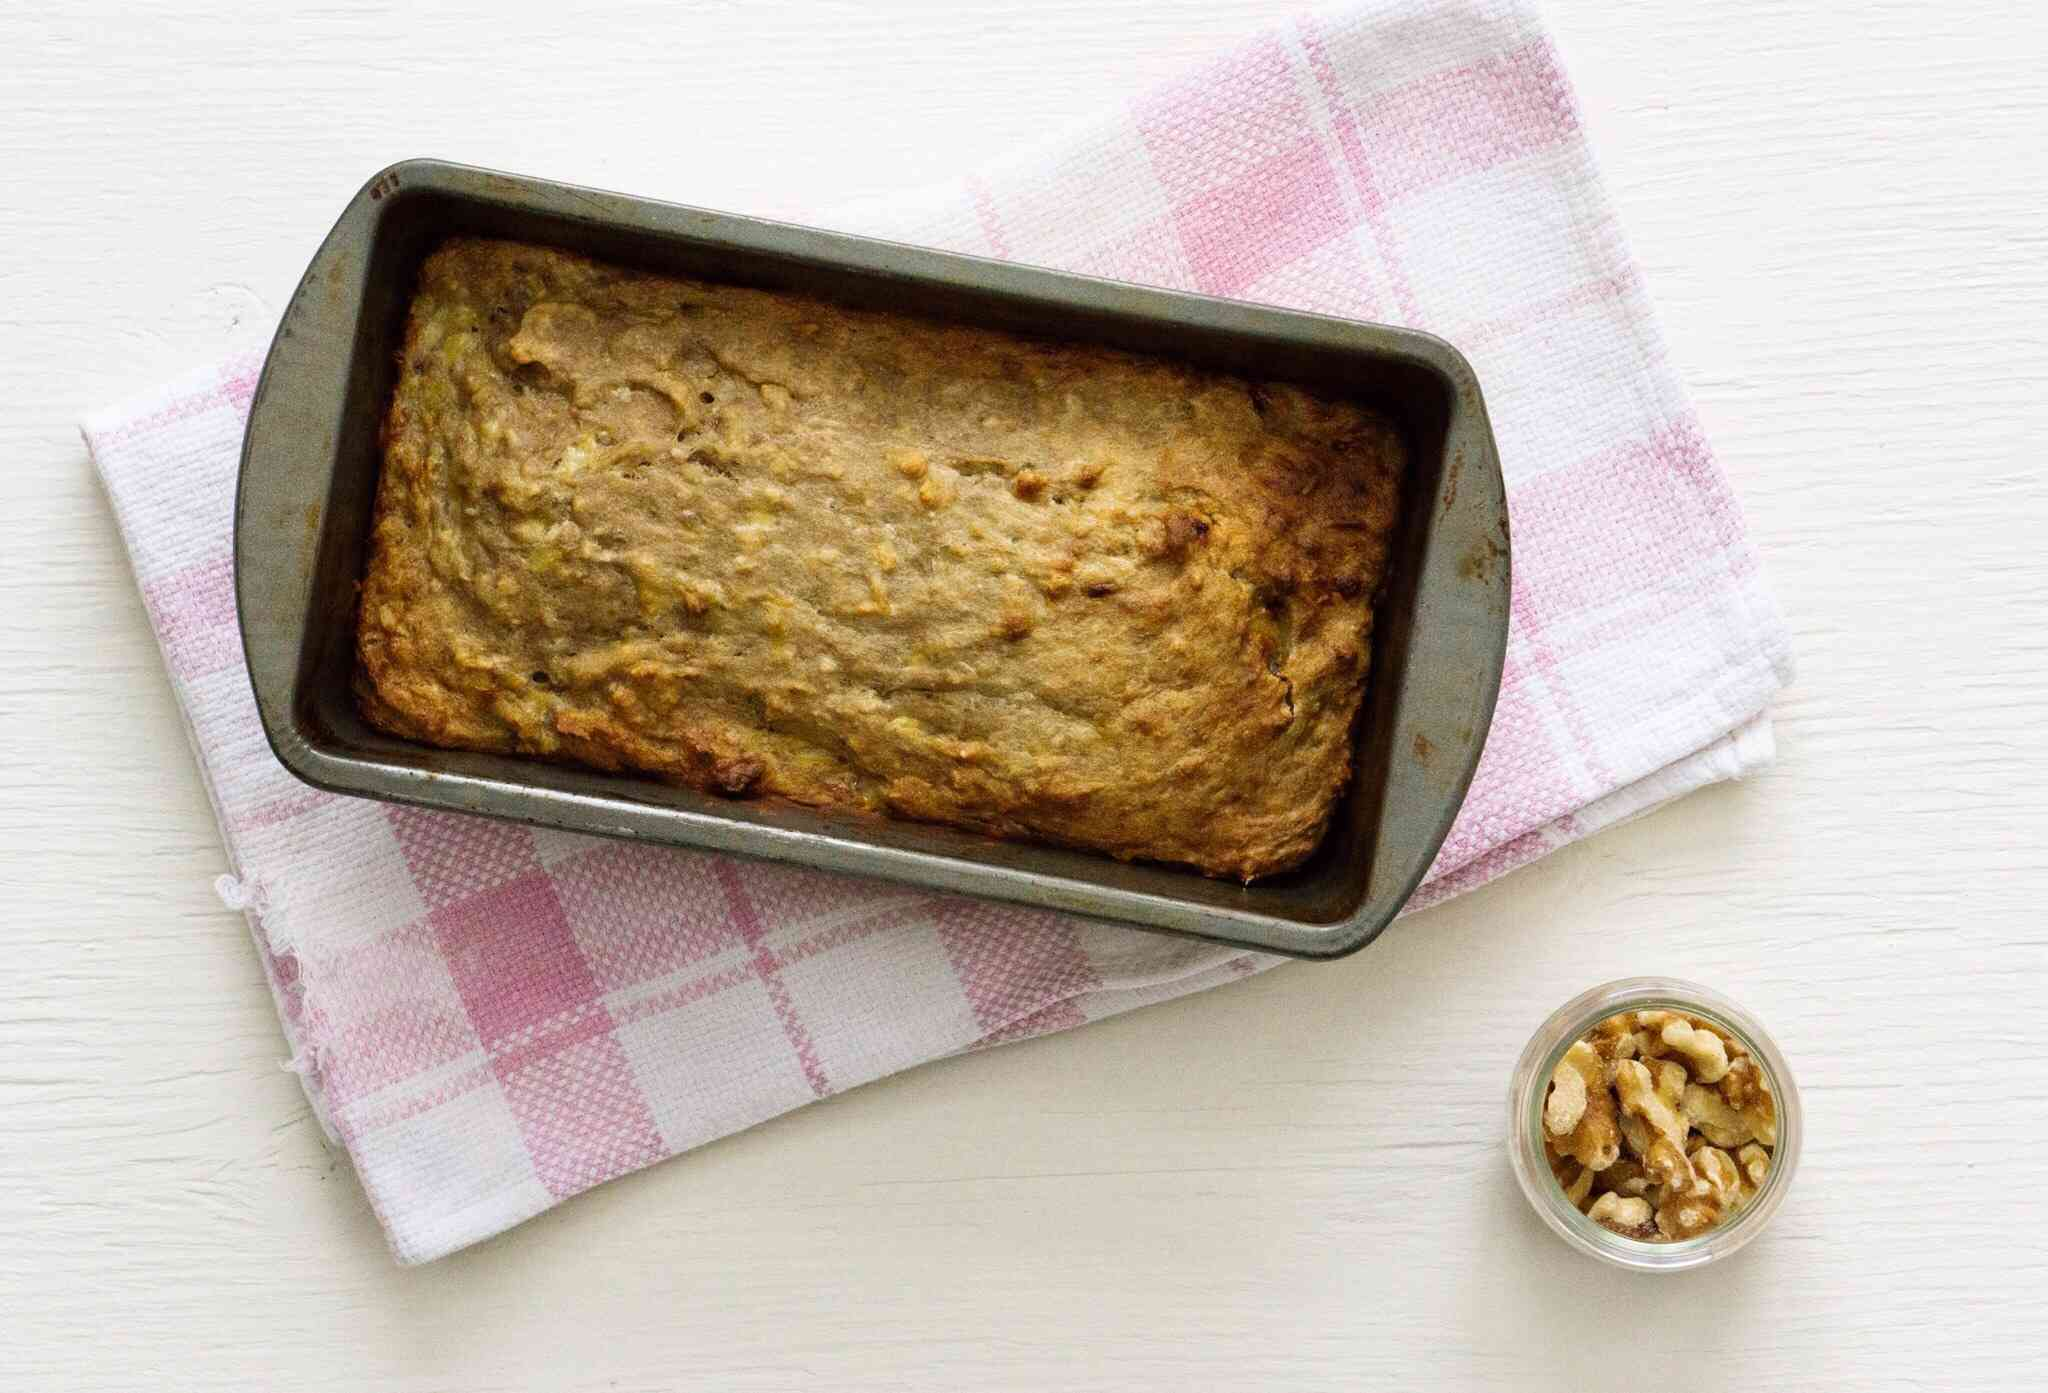 banana bread in pan on pink and white dish towel